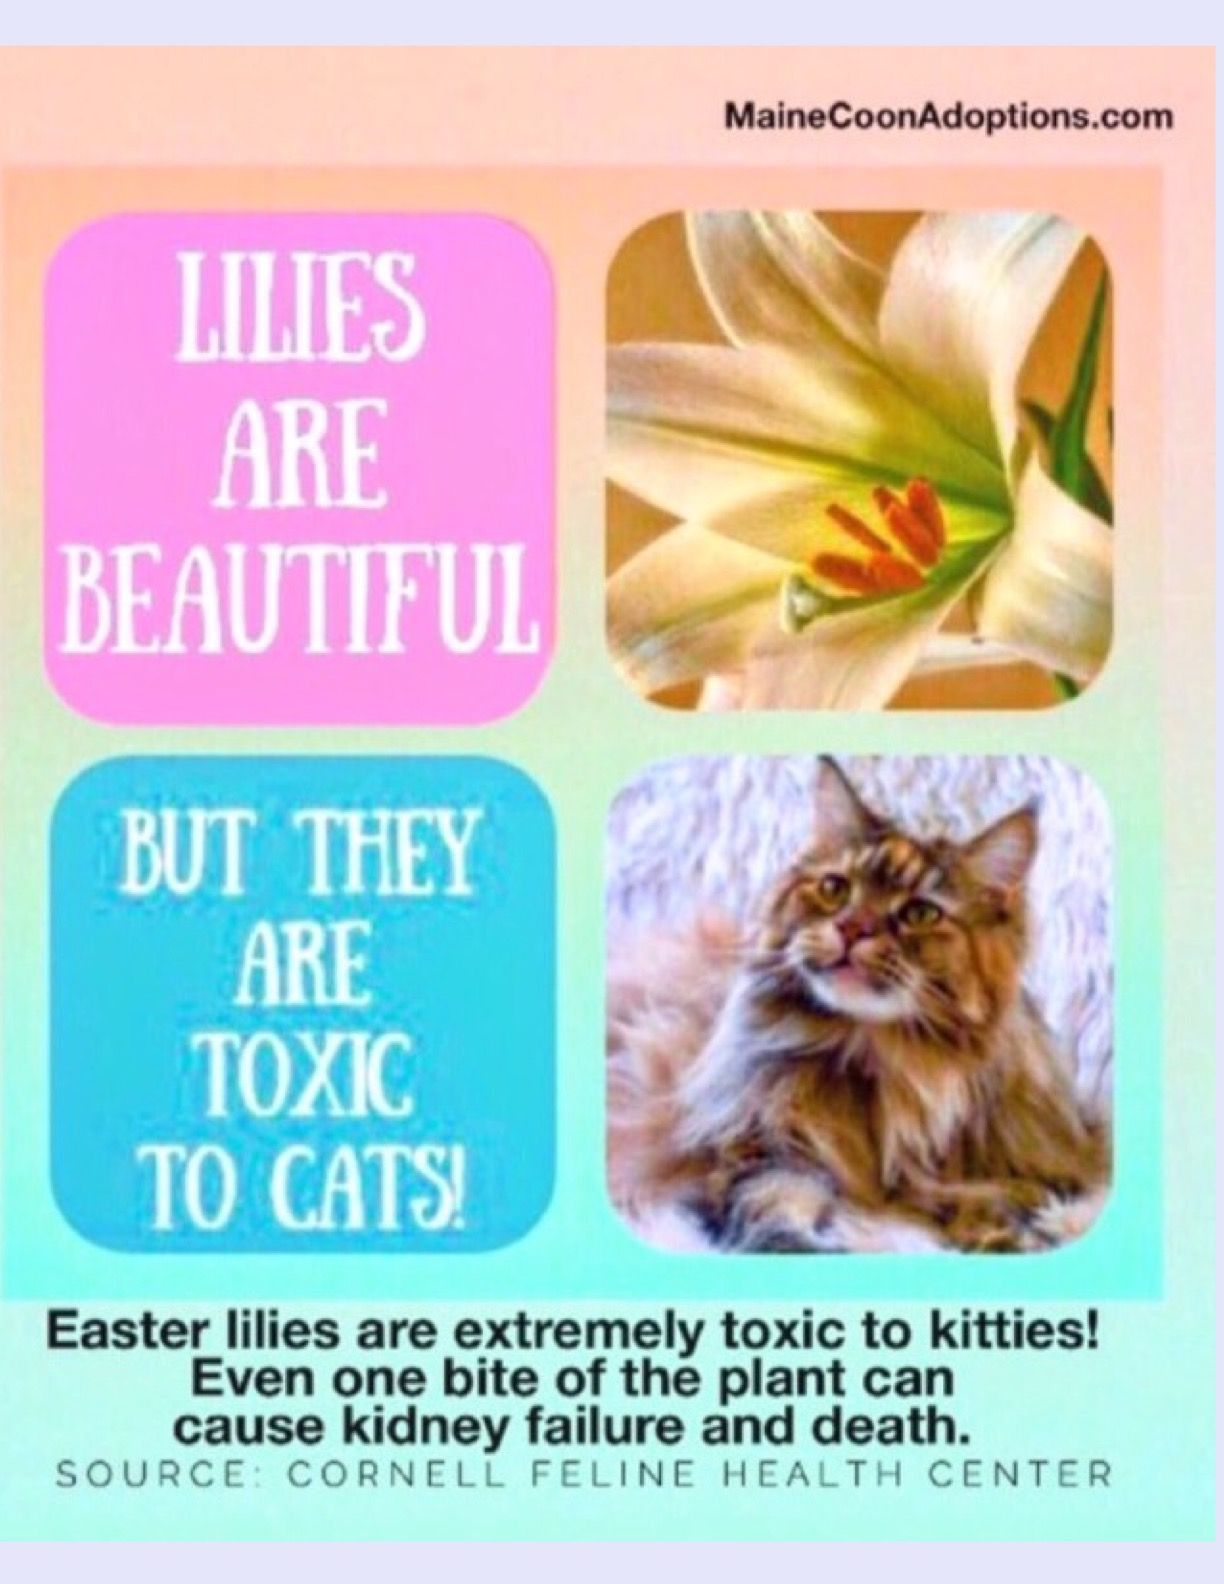 Safety Alert Many Types Of Lilies Are Dangerous To Cats All Parts Of The Lily Are Poisonous Including The Pollen Even A Feline Health Cat Rescue Cat Safety